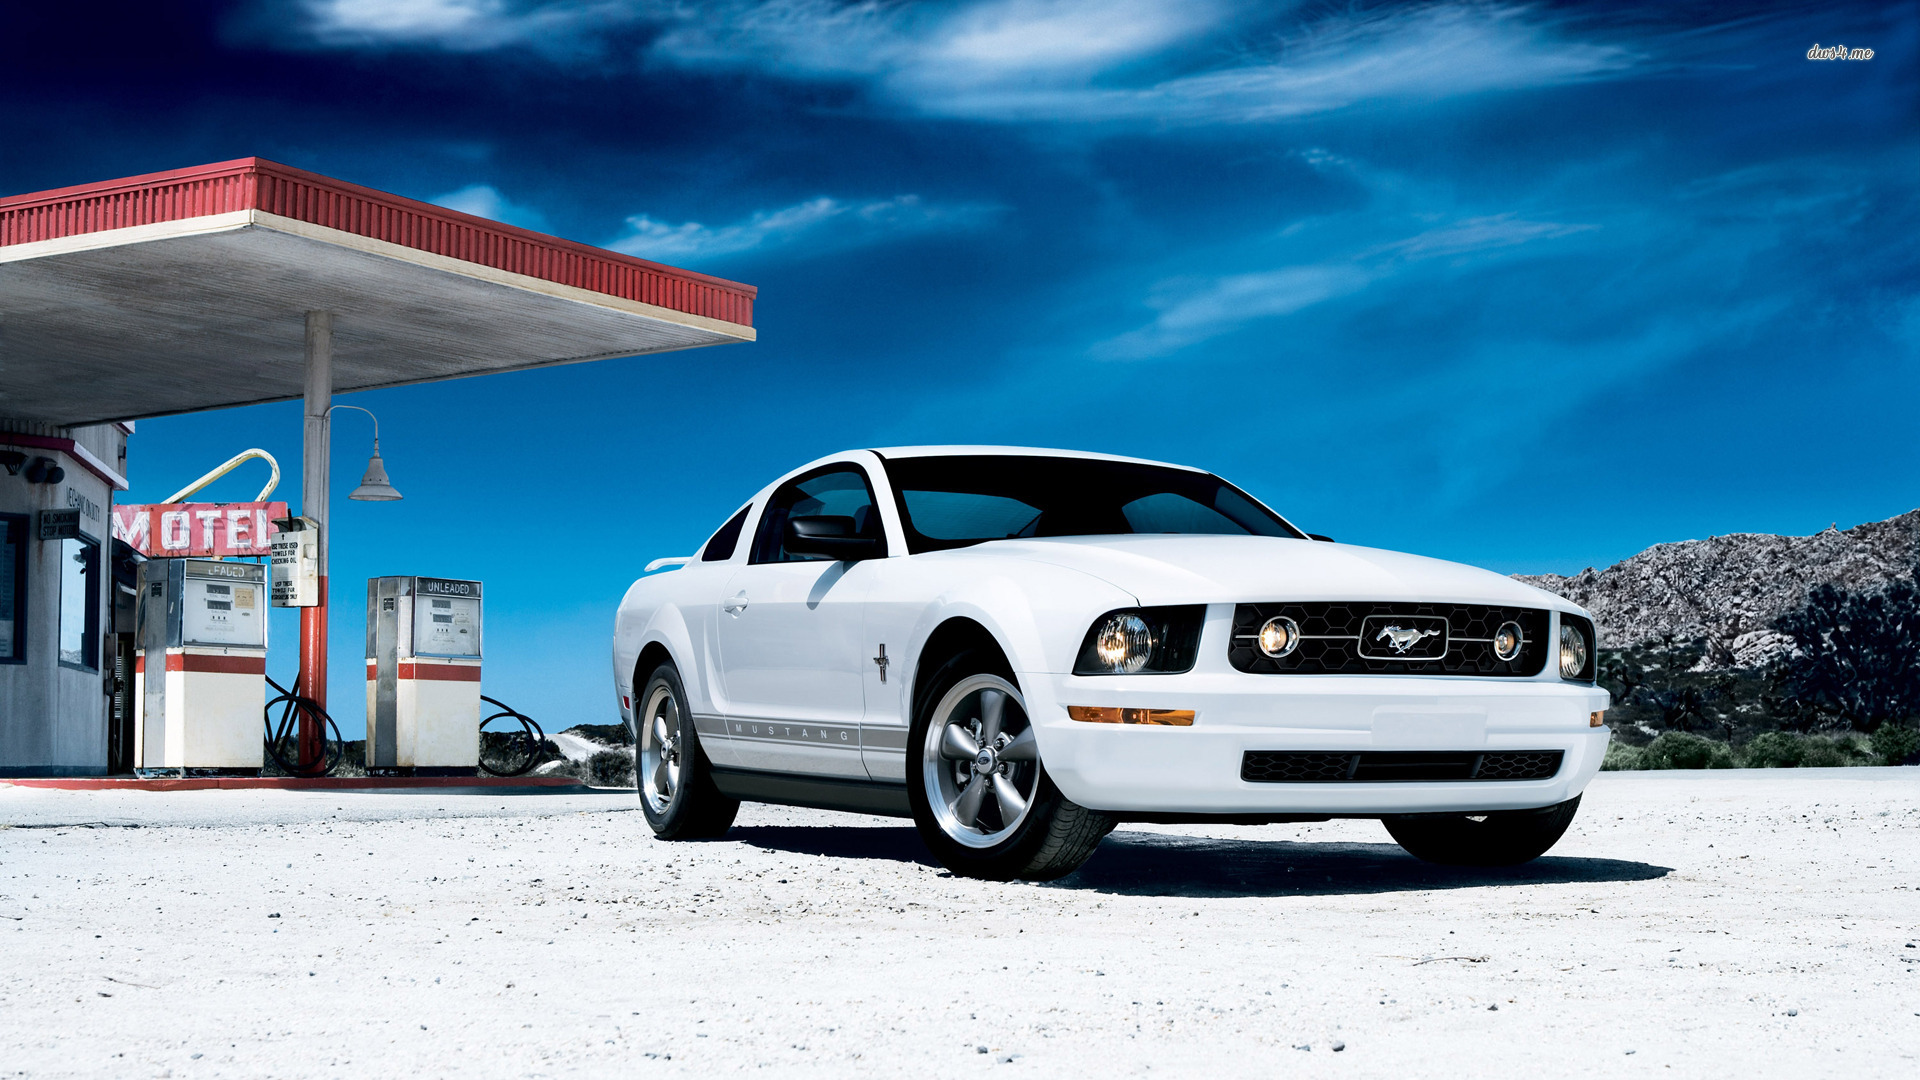 Full HD p Mustang Wallpapers HD, Desktop Backgrounds  1920x1080